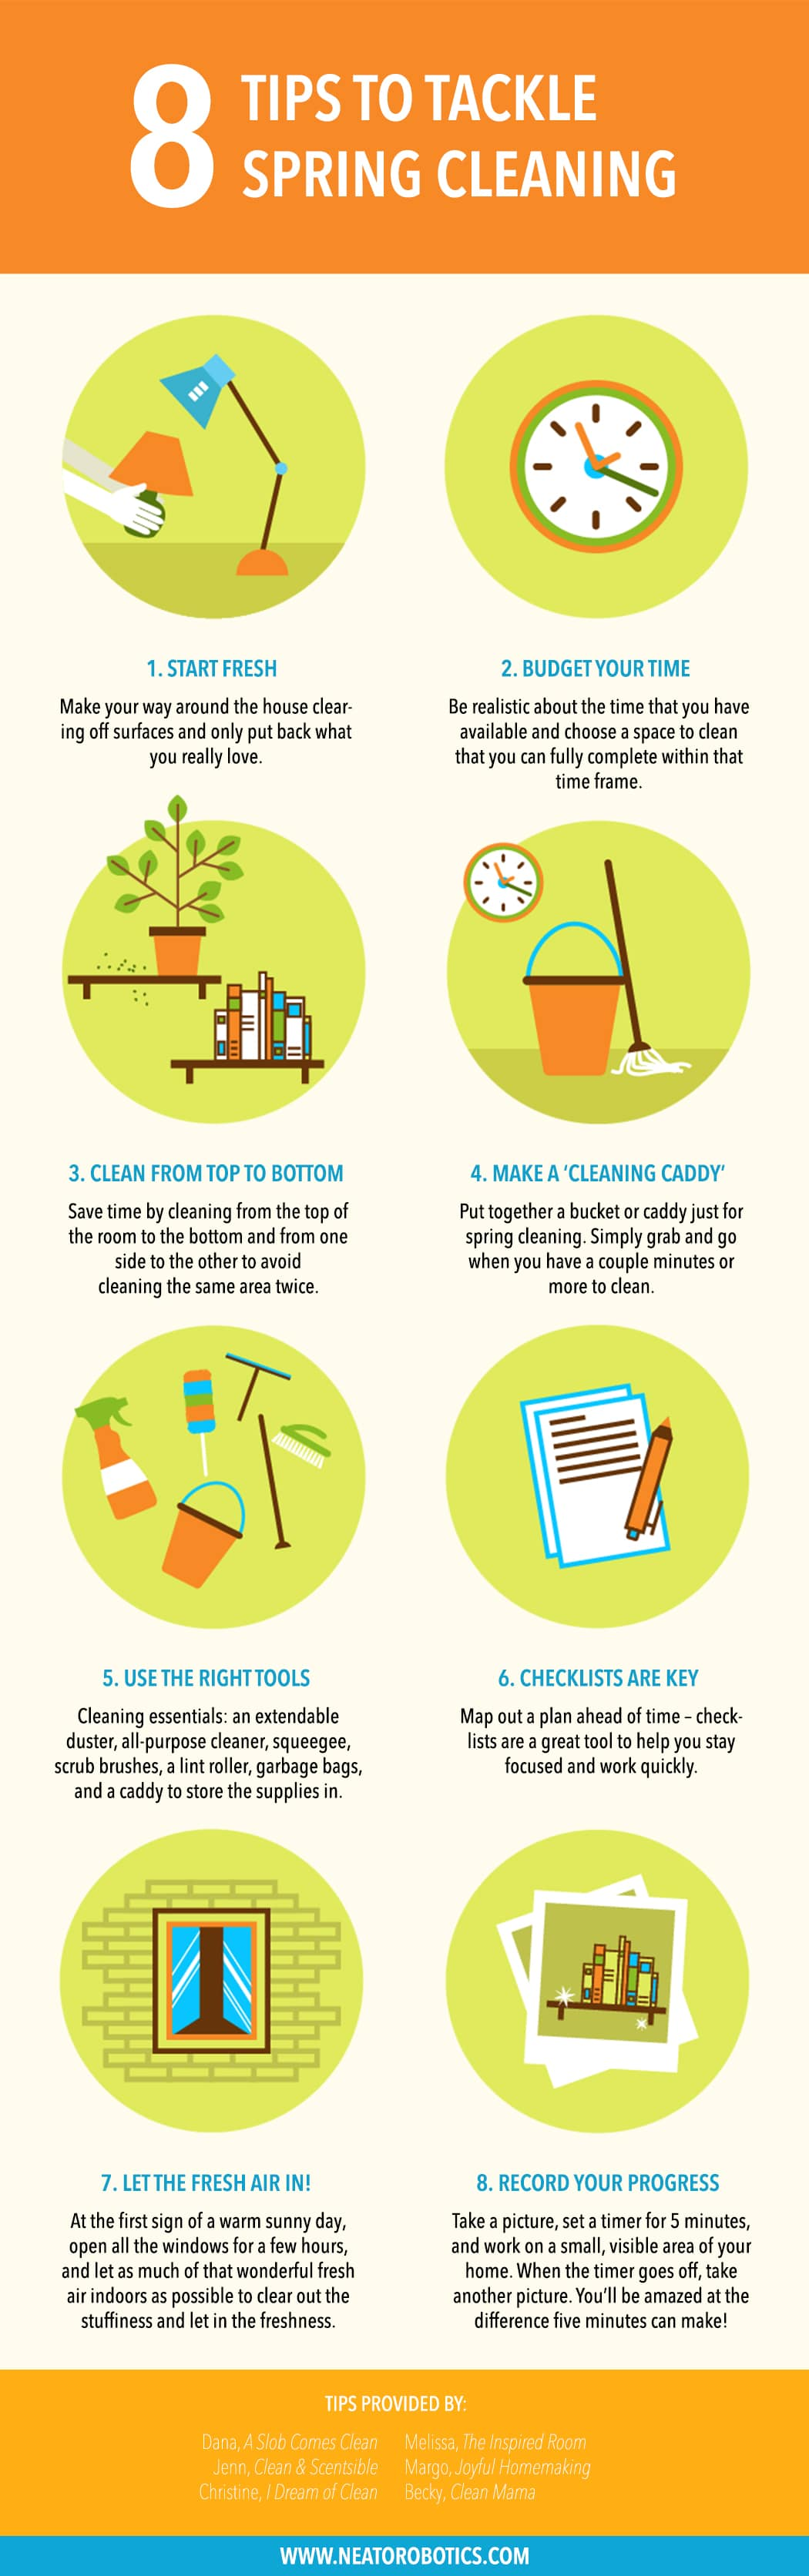 spring cleaning tips from the cleaning experts - neato